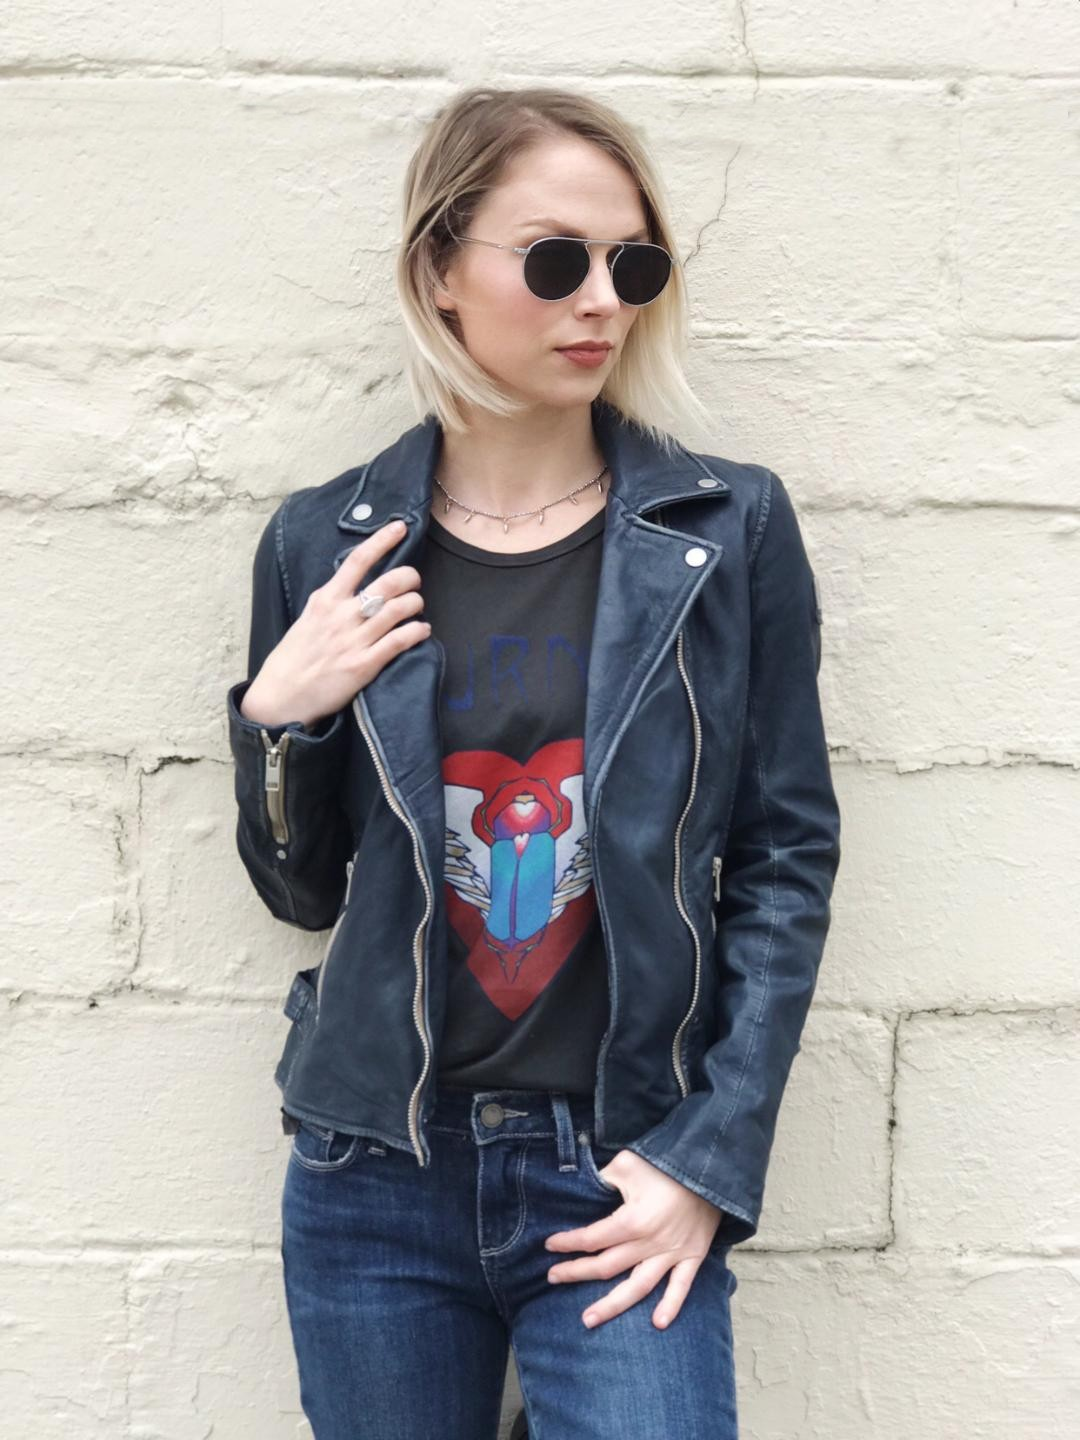 - My go to outfit is a Band Tee, Jeans, and a Leather Jacket.Journey Graphic Tee by Lauren Moshi, Mauritius Blue Leather Jacket, Paige Distressed Denim, Krewe Sunglasses and Catherine Page Choker.